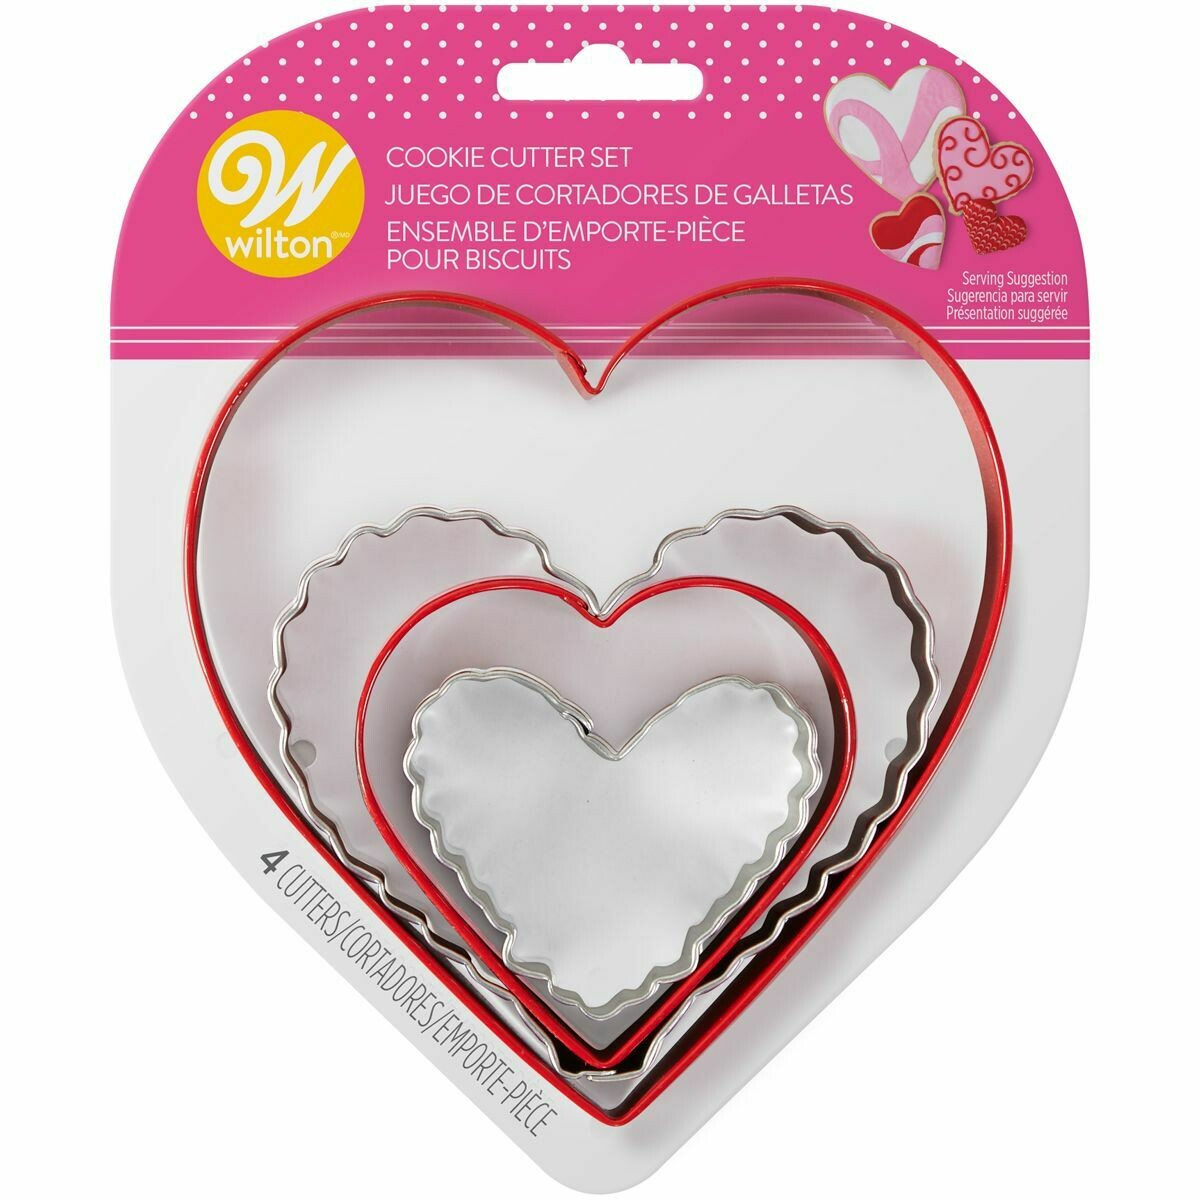 Wilton Cookie Cutter Set of 4 -HEARTS - Σετ 4τεμ Κουπ πατ καρδιές